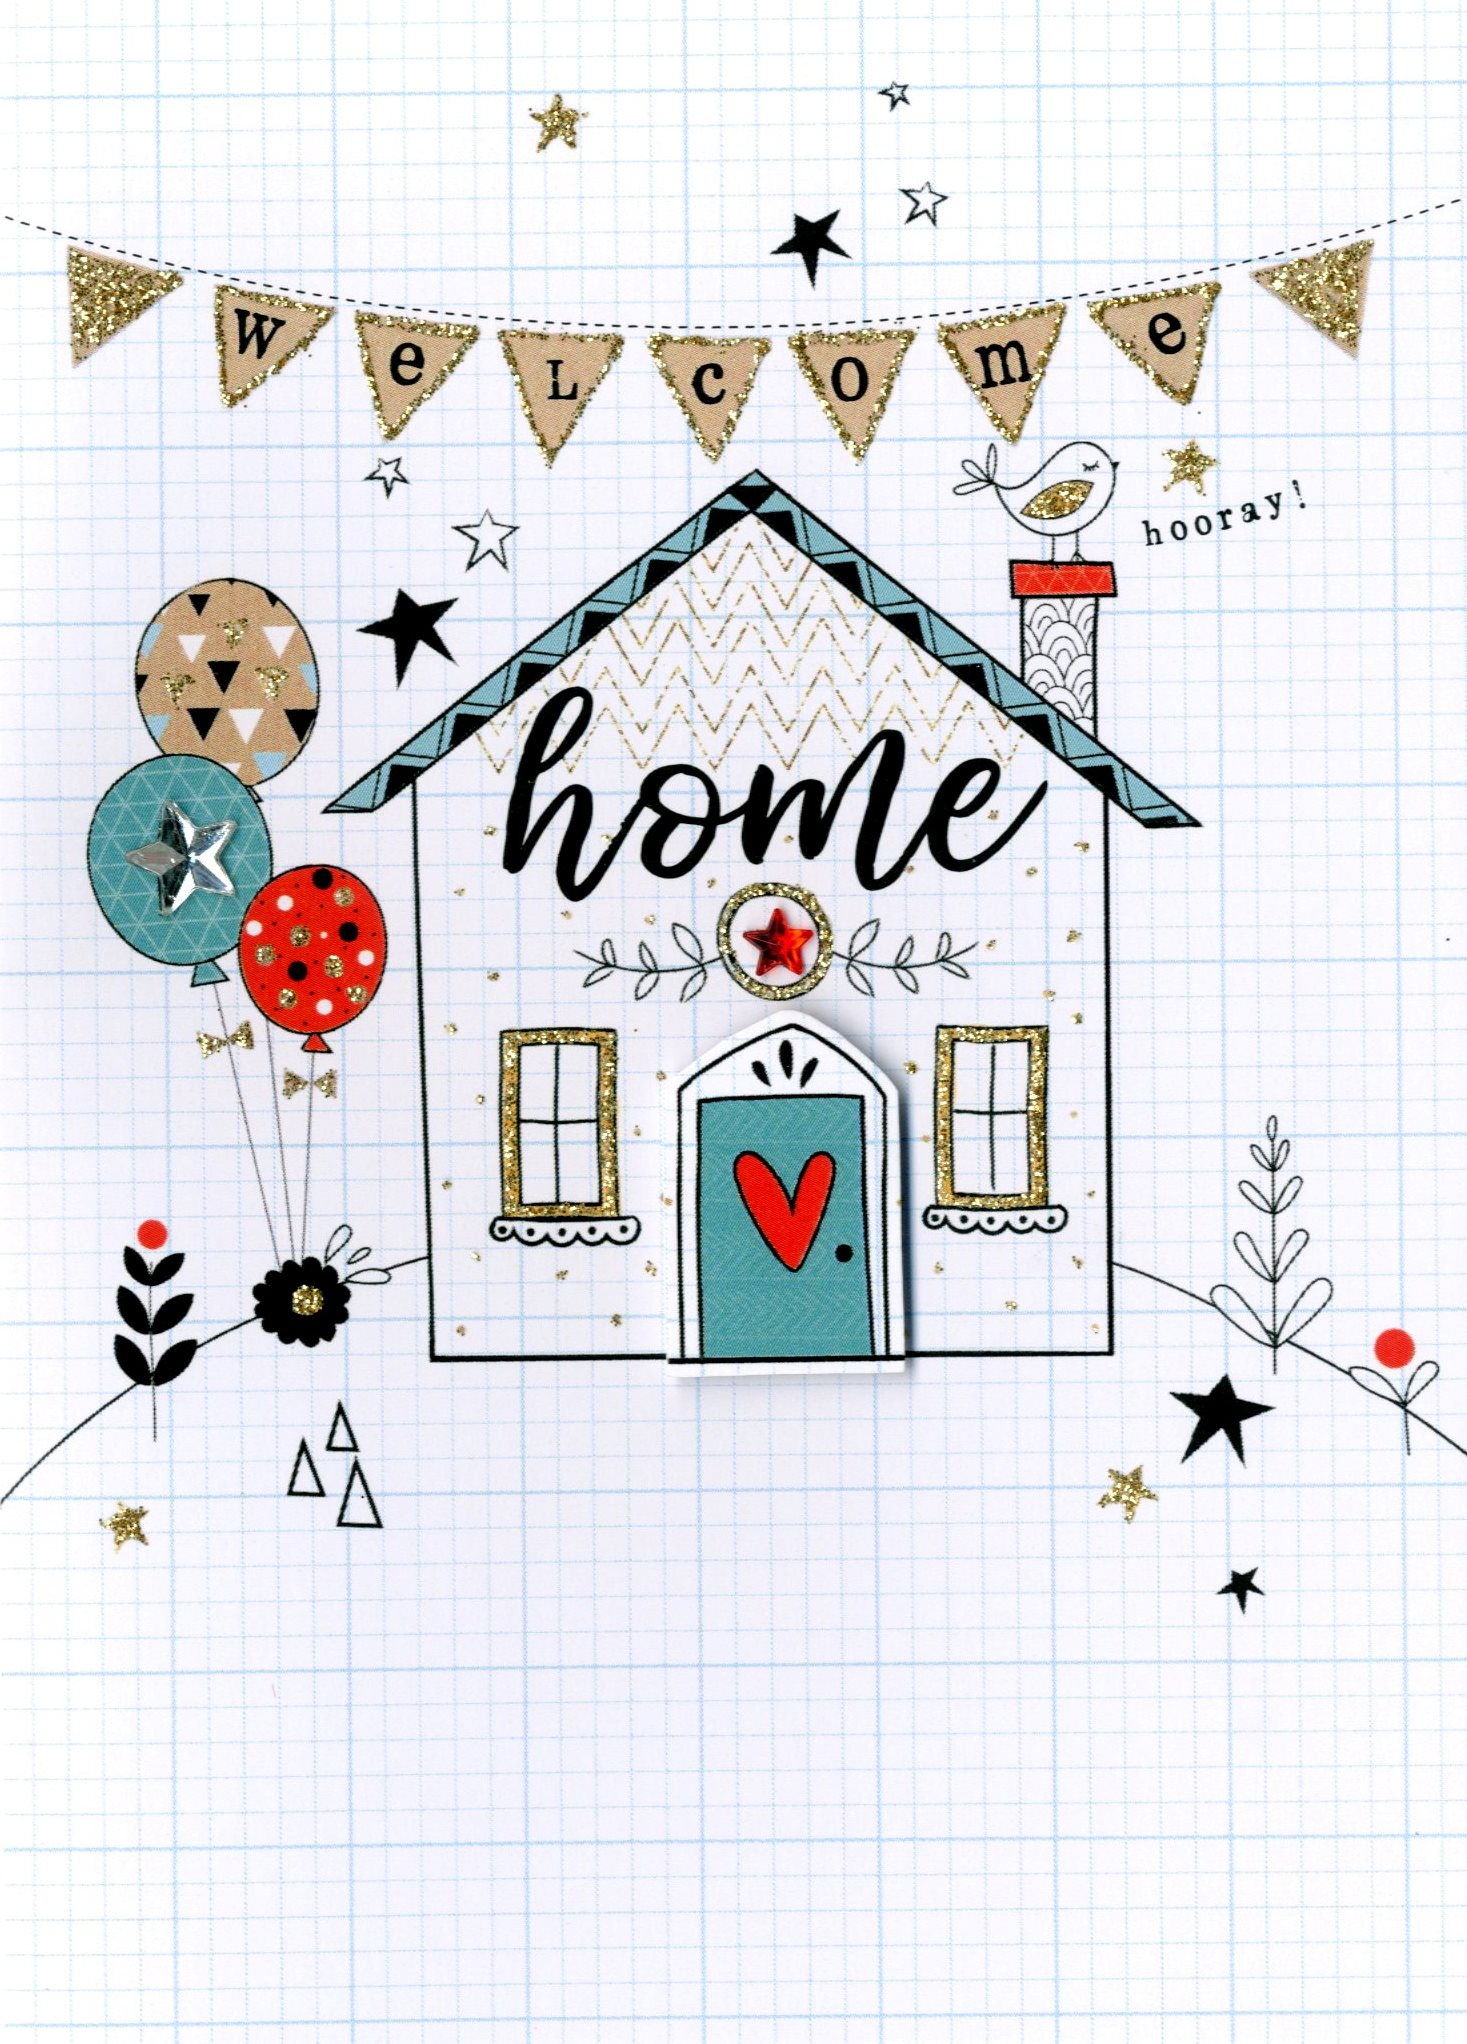 Welcome home greeting card cards love kates welcome home greeting card m4hsunfo